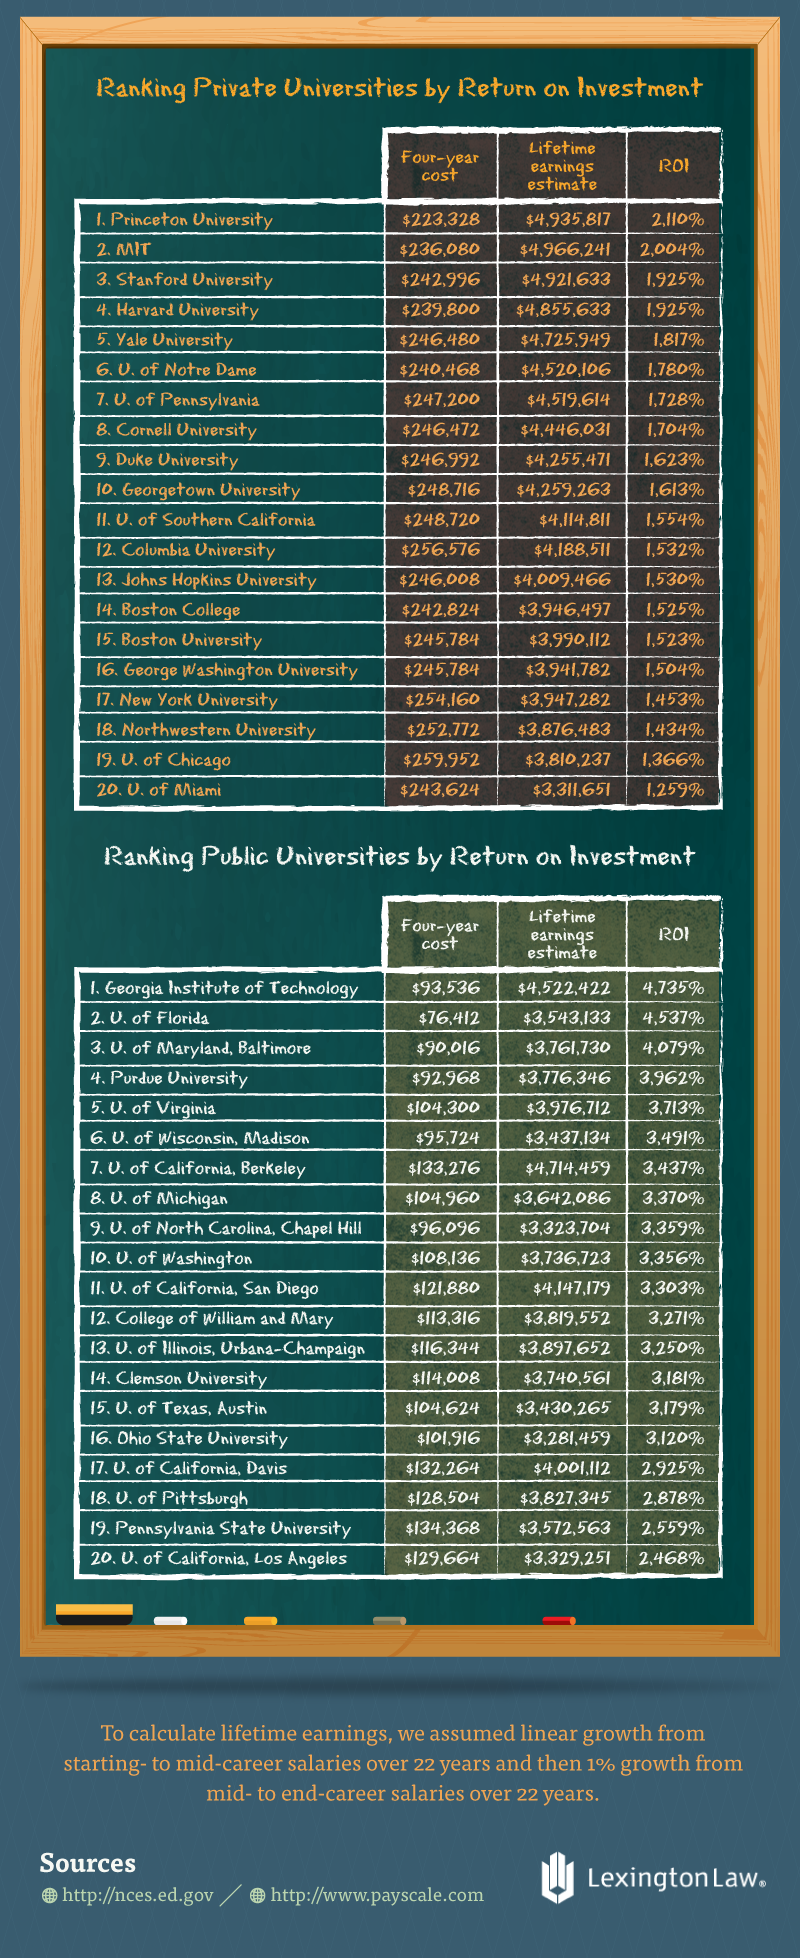 Rankings Private vs Public Universities